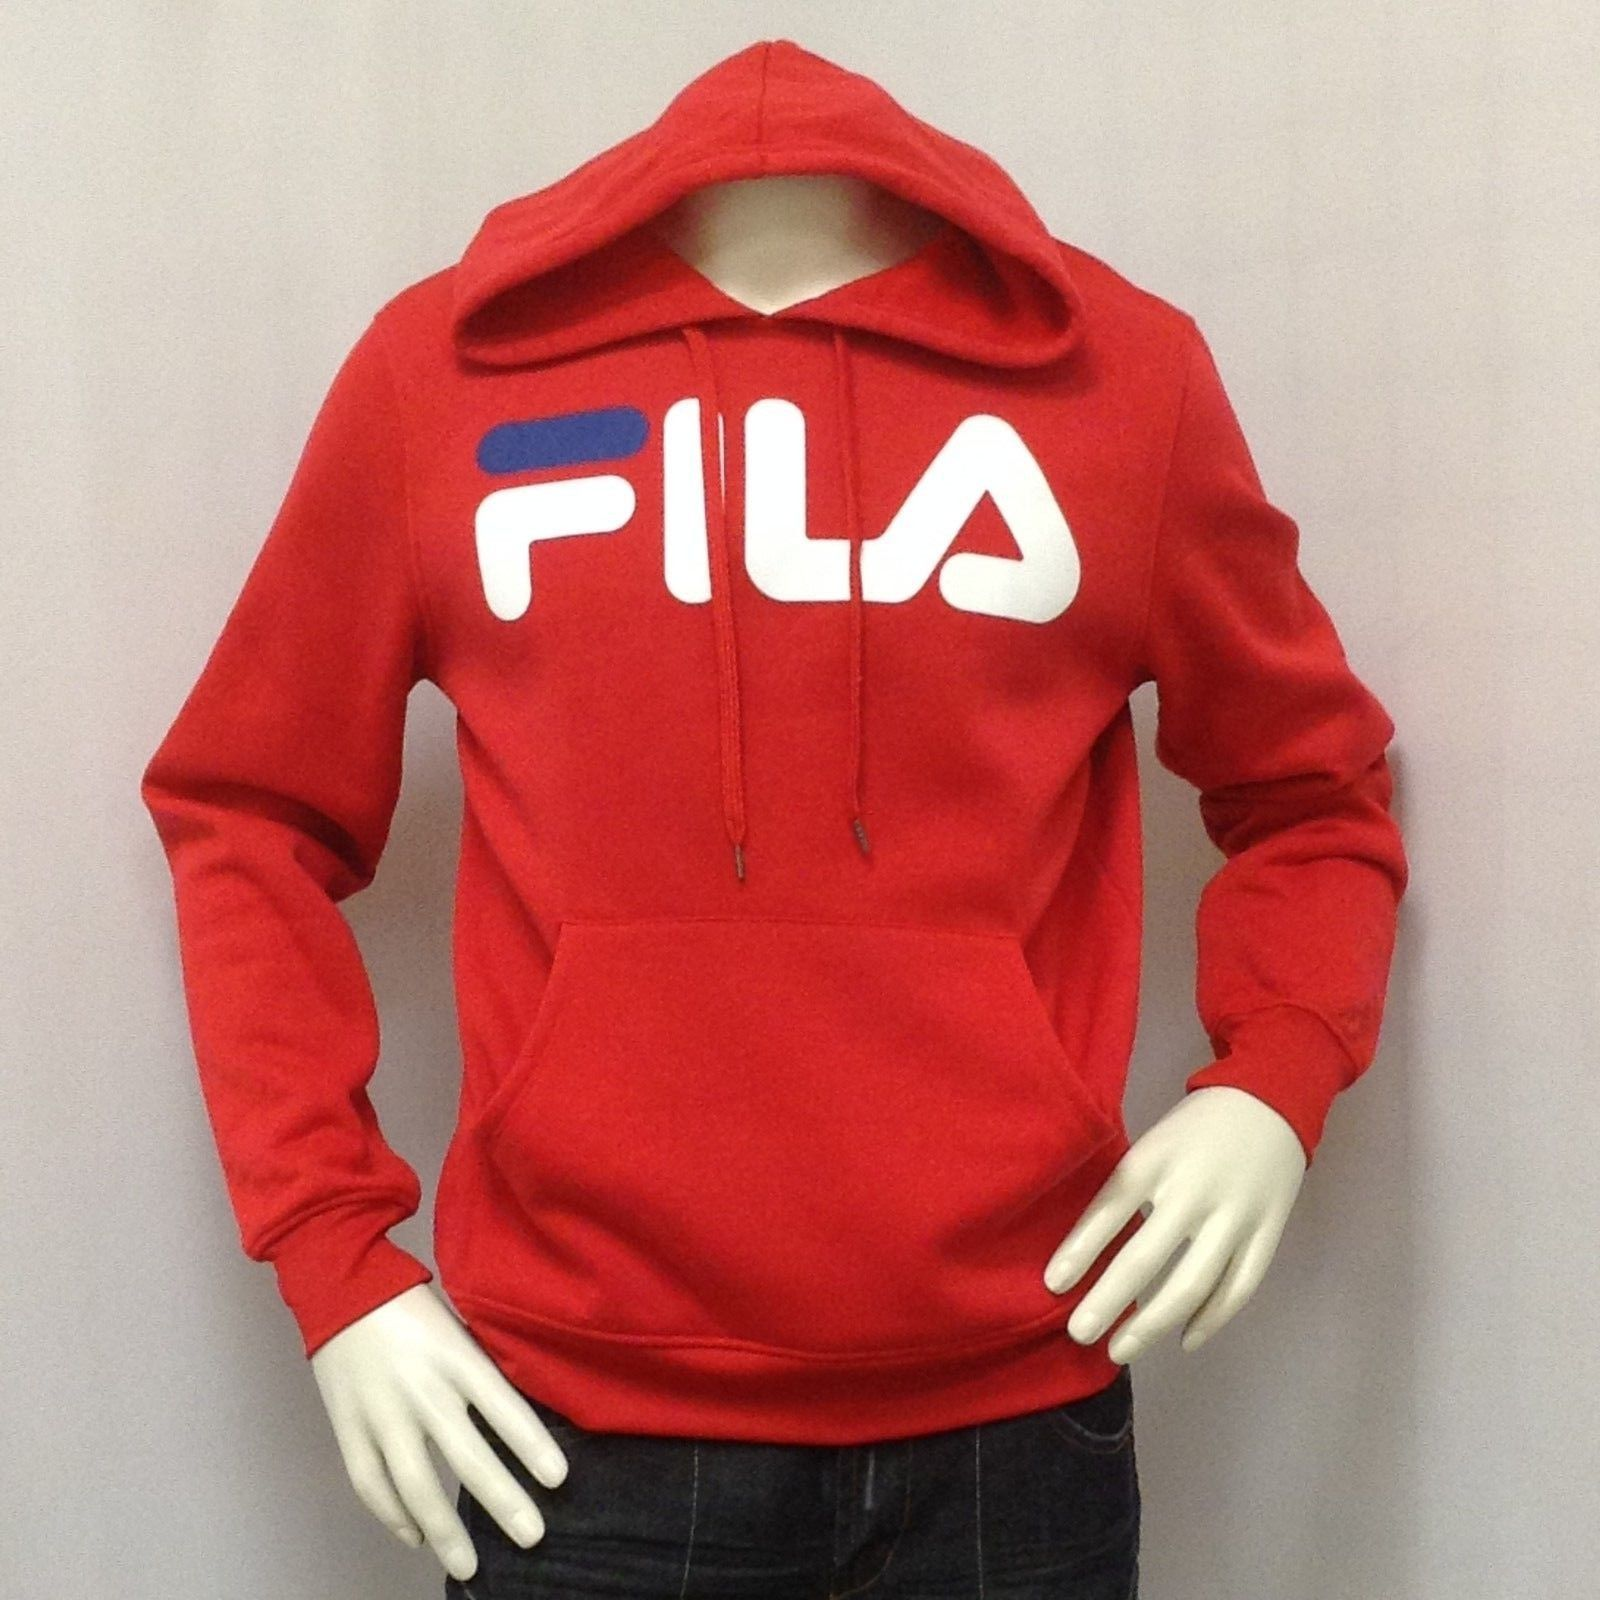 e5fdf0ca6124 Fila Branded Red Color Export Quaality Phillies Fabrics Bangladesh  Manufacture Fila Hoodie Jacket (APH-